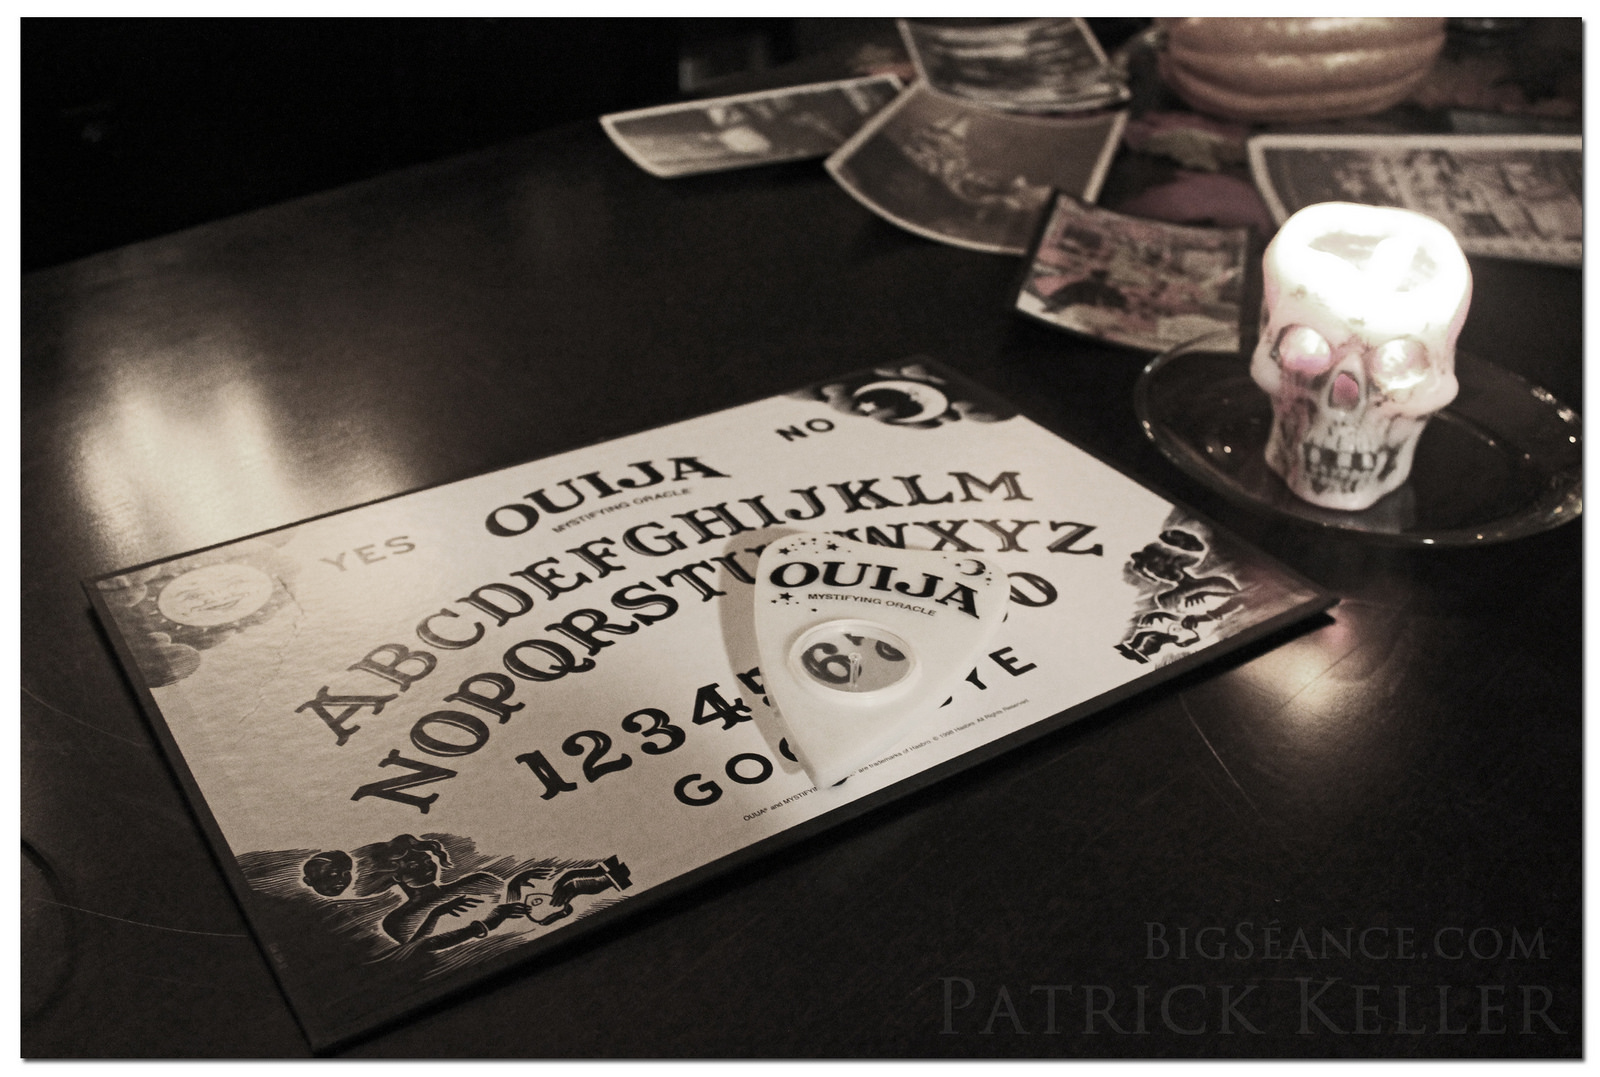 How Ouija boards work. (Hint: It's not ghosts.)